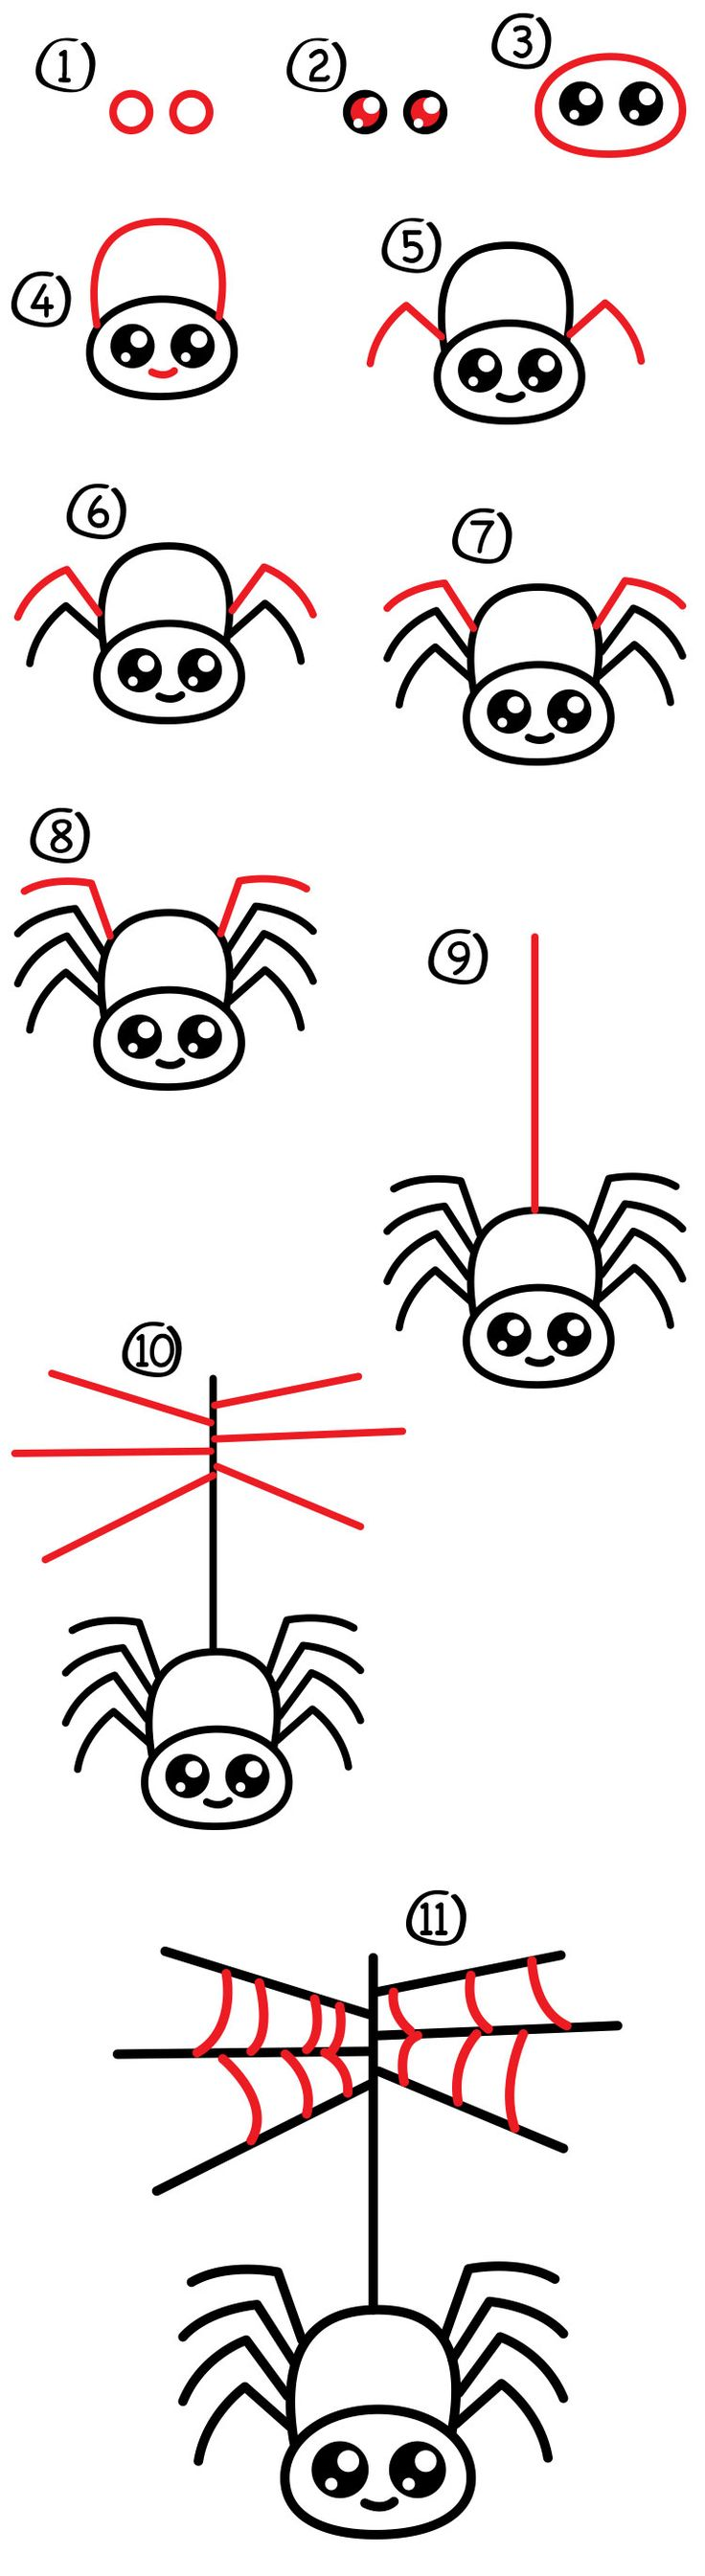 Drawn spider small black How ideas To Hub Spider